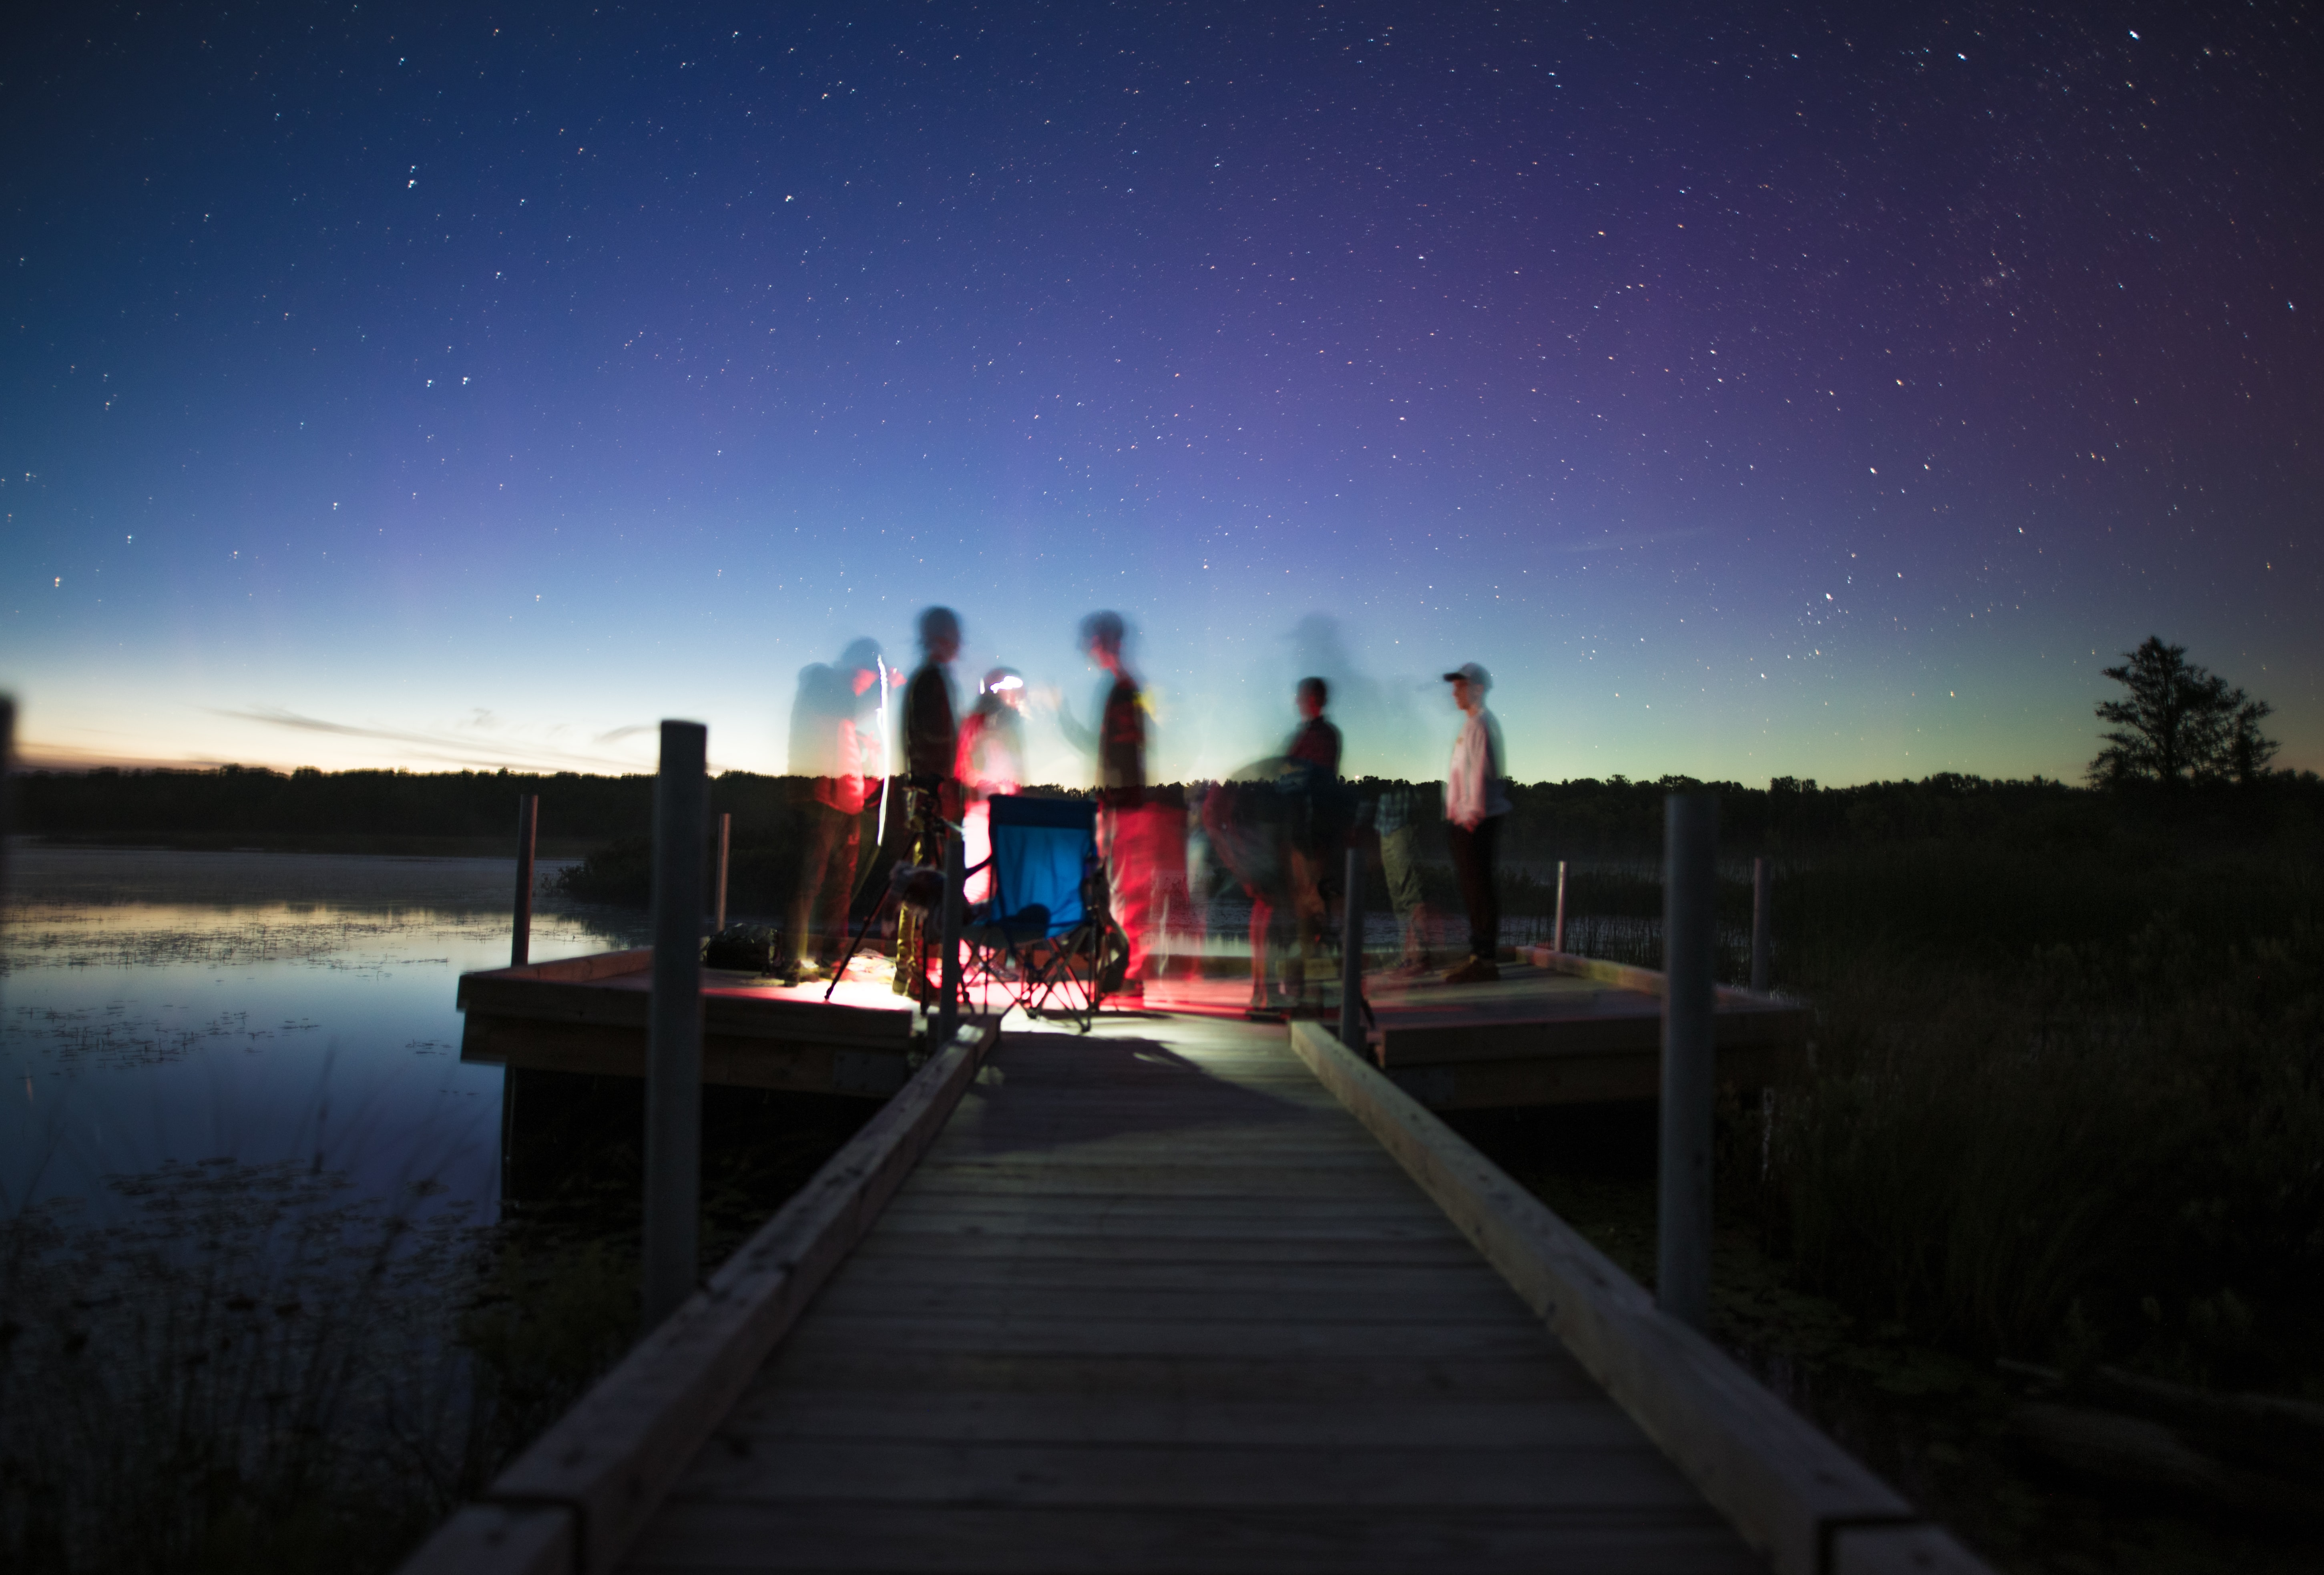 person illustration on brown wooden dock stage photography during nightime